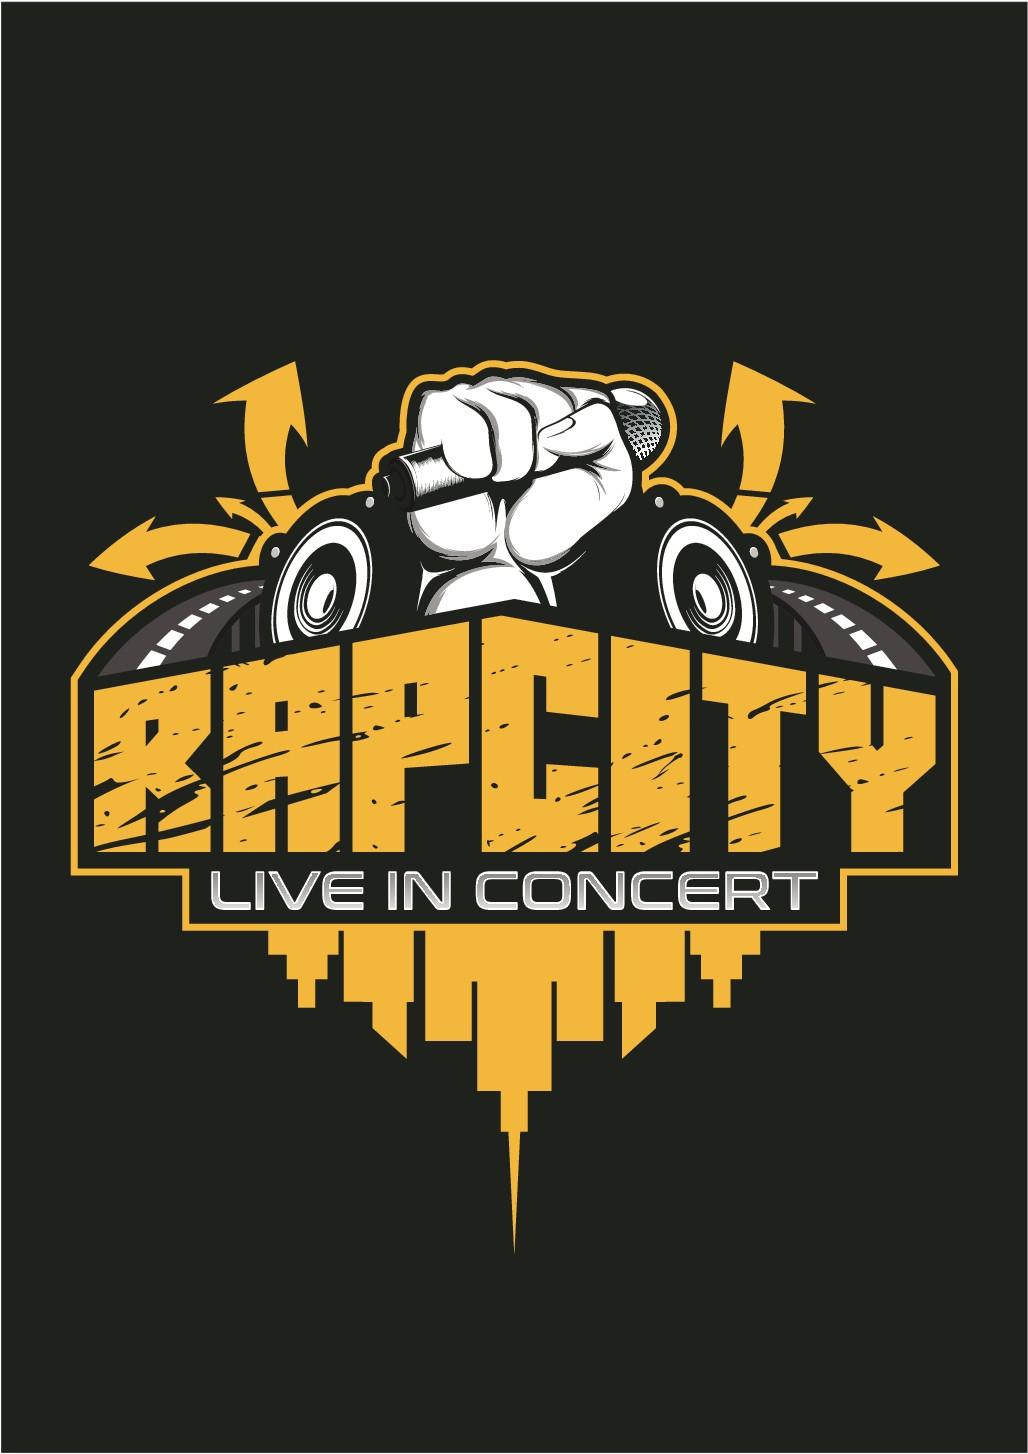 Rap City Concert Logo Design